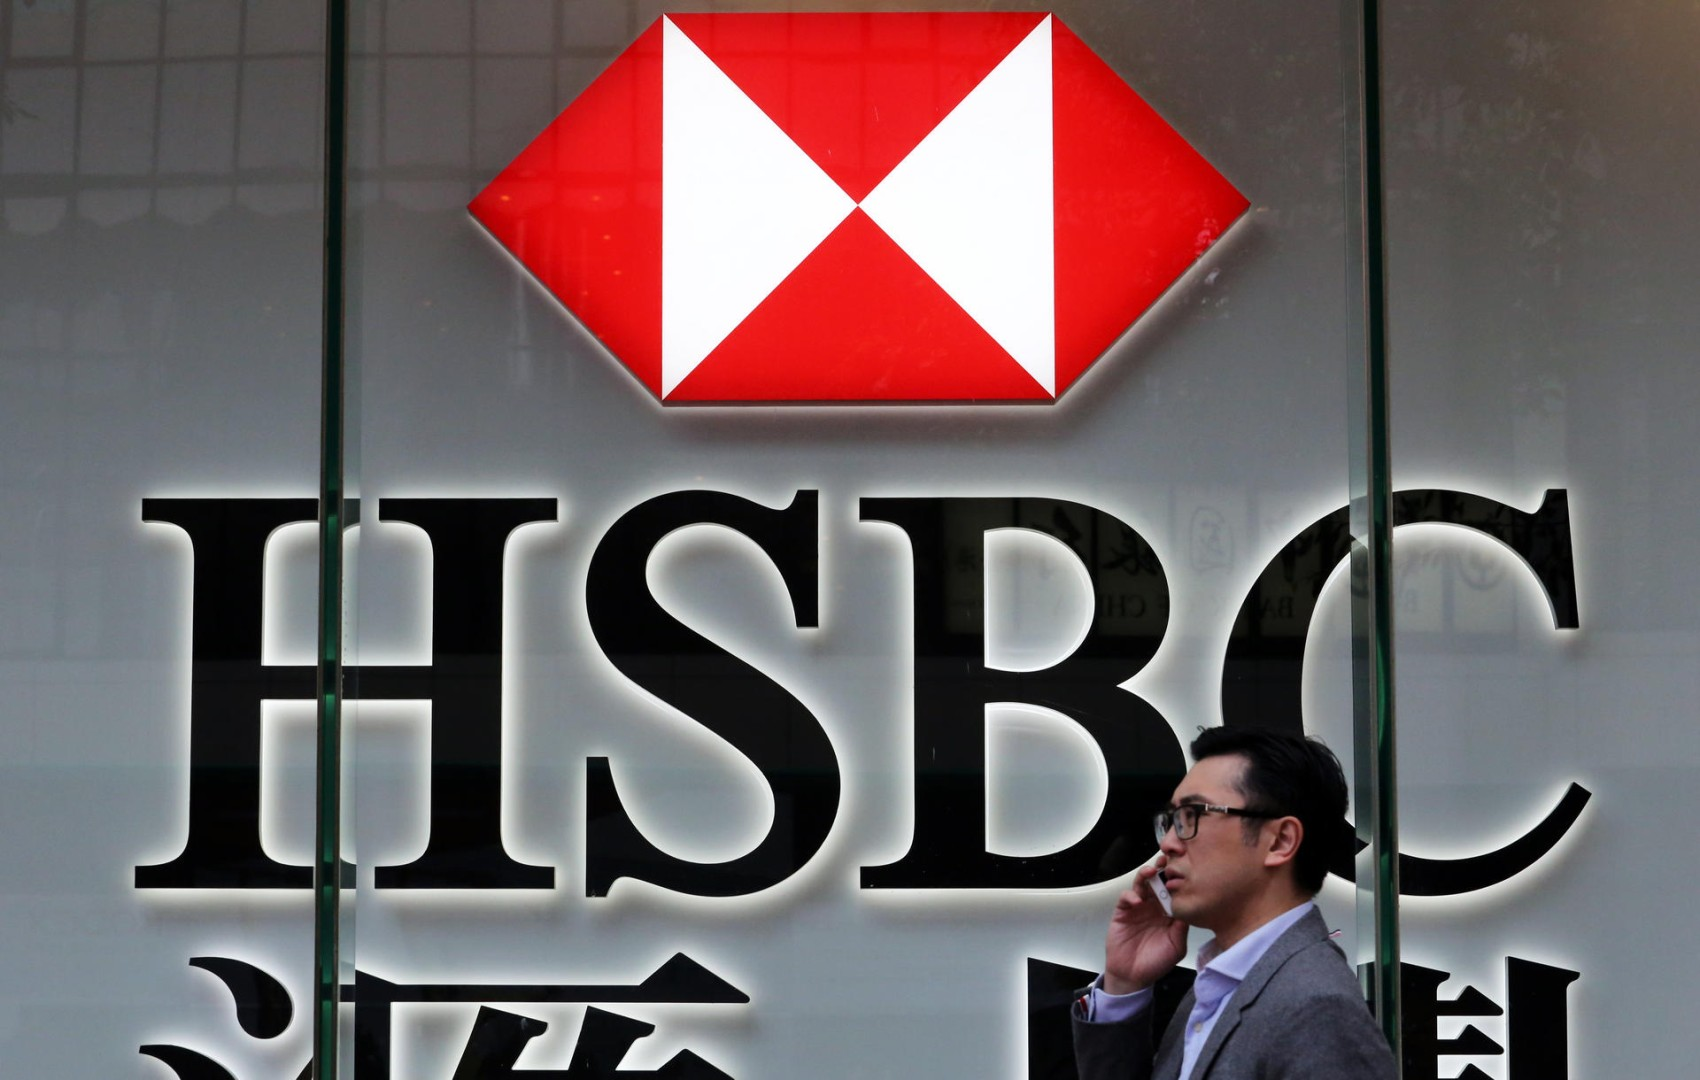 Bank account difficulties turning business away from Hong Kong